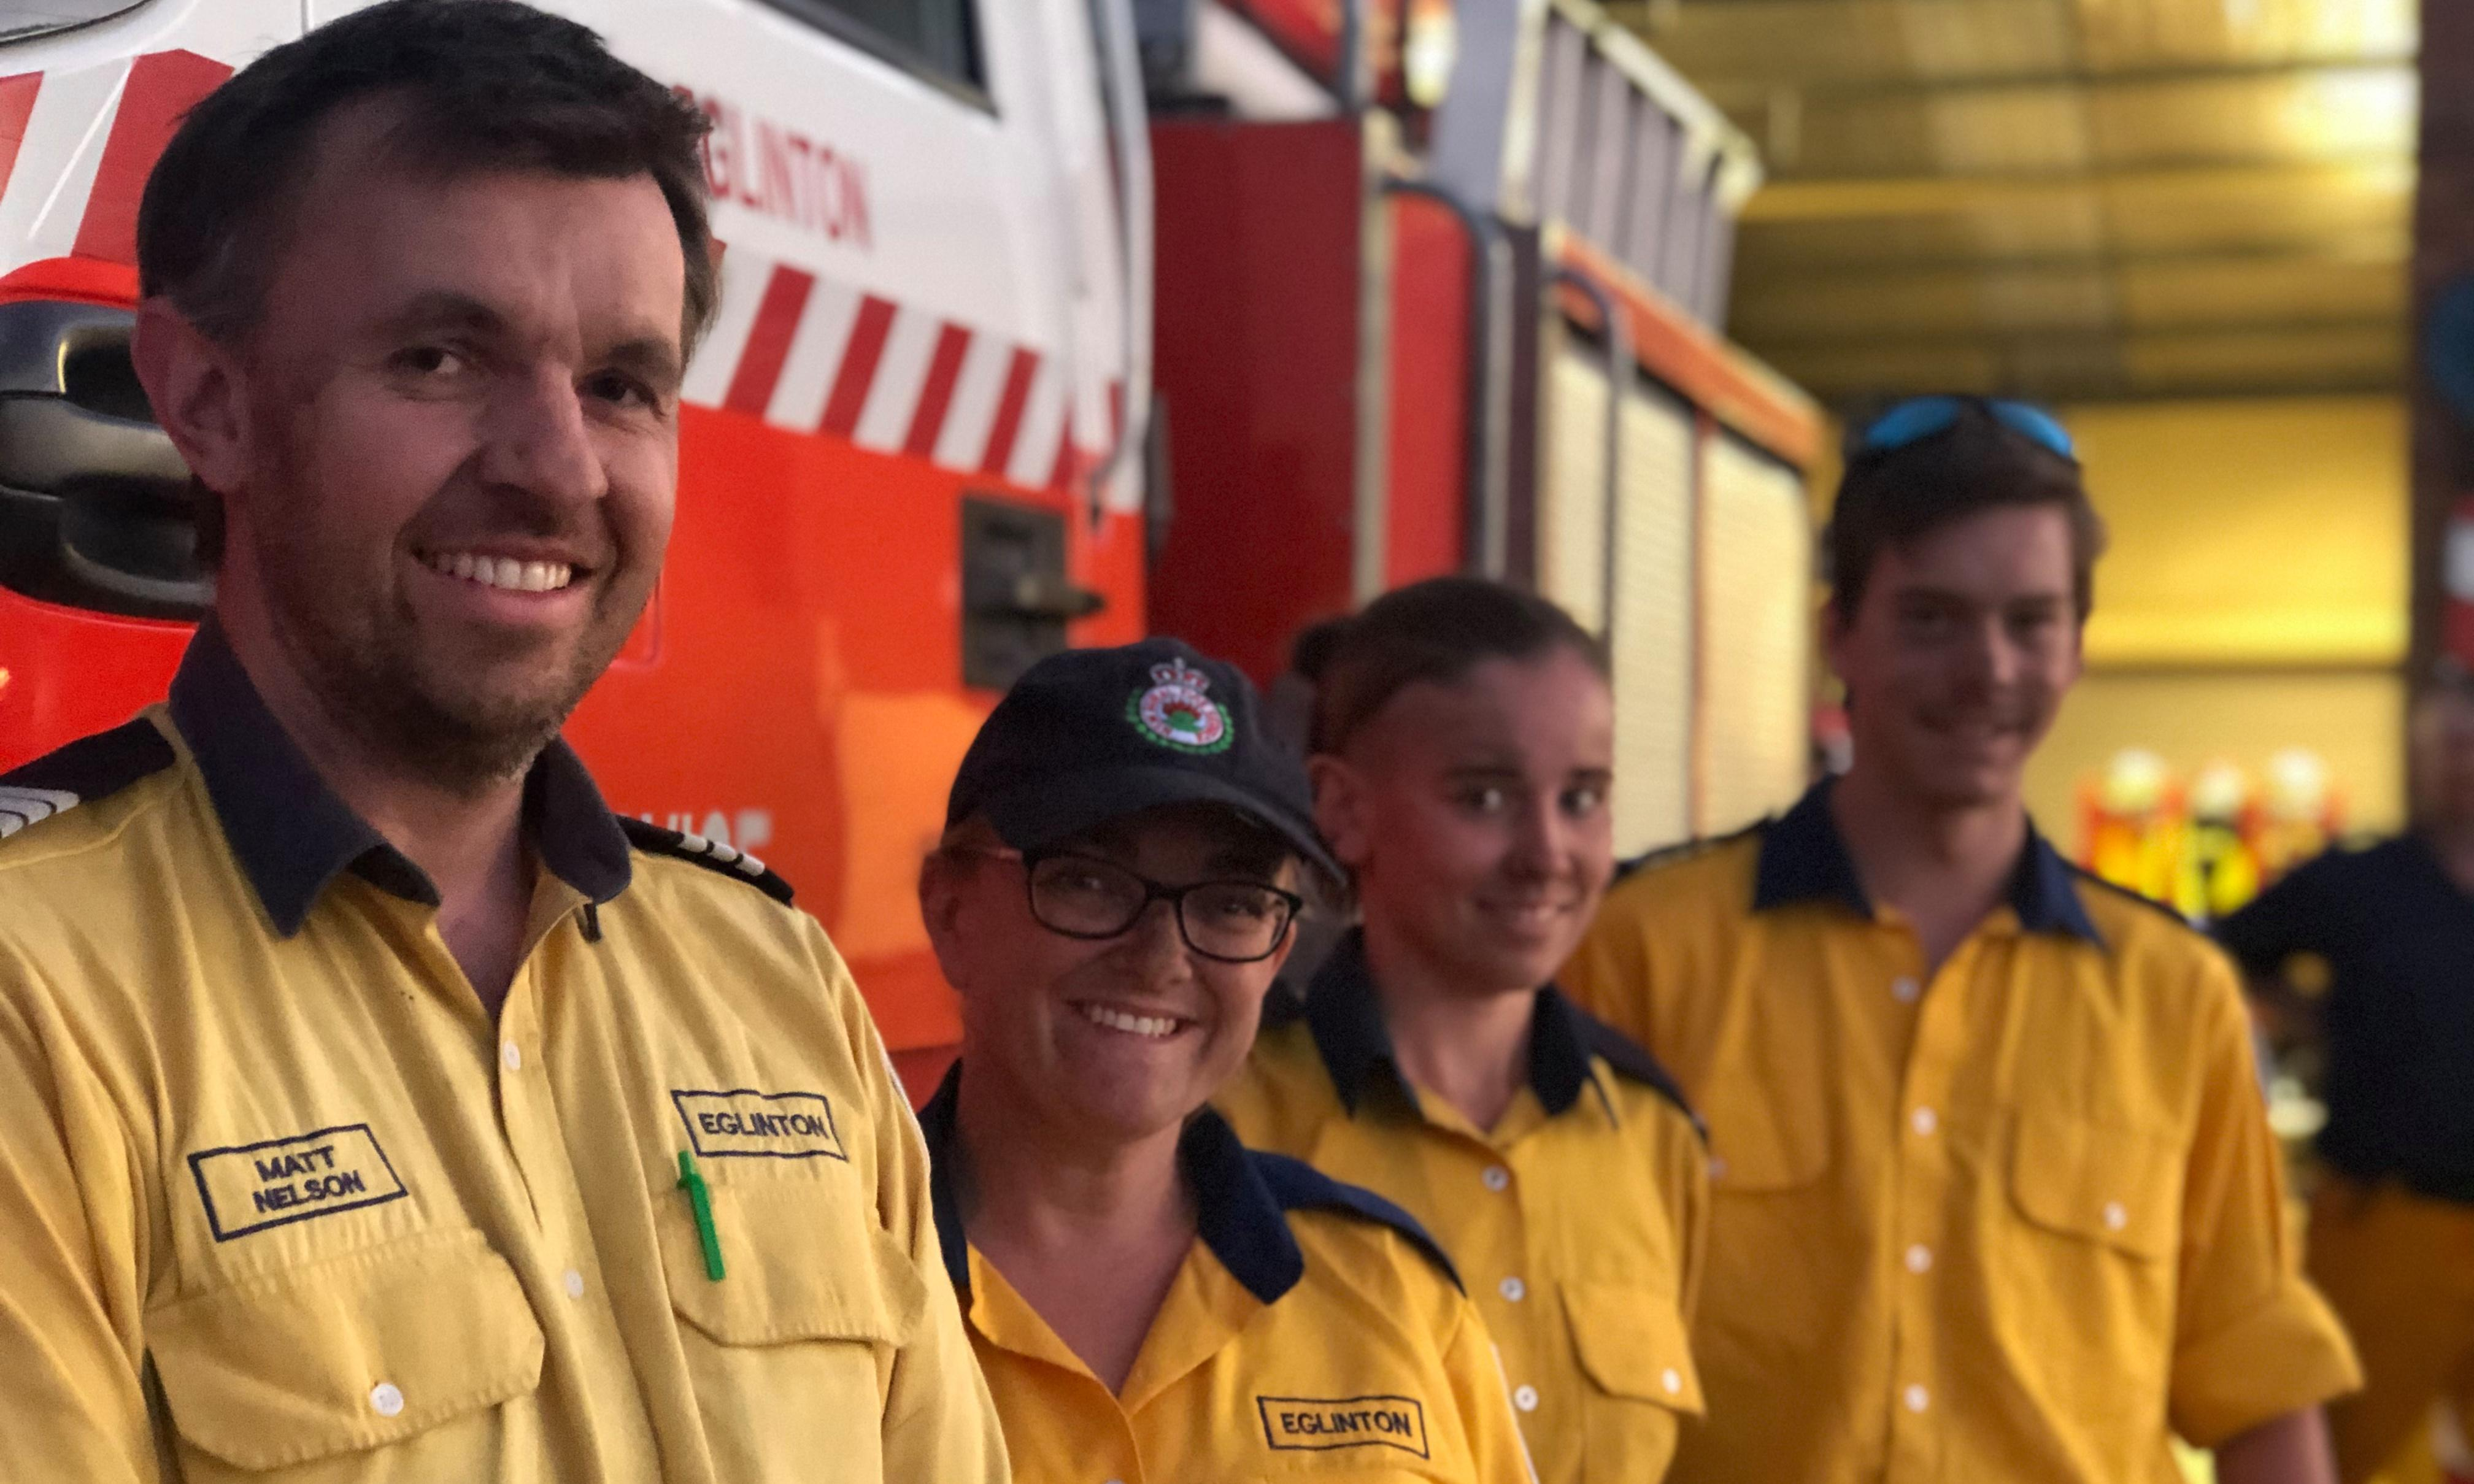 The volunteers fighting fires: 'there's always the fear you're not going to come home'